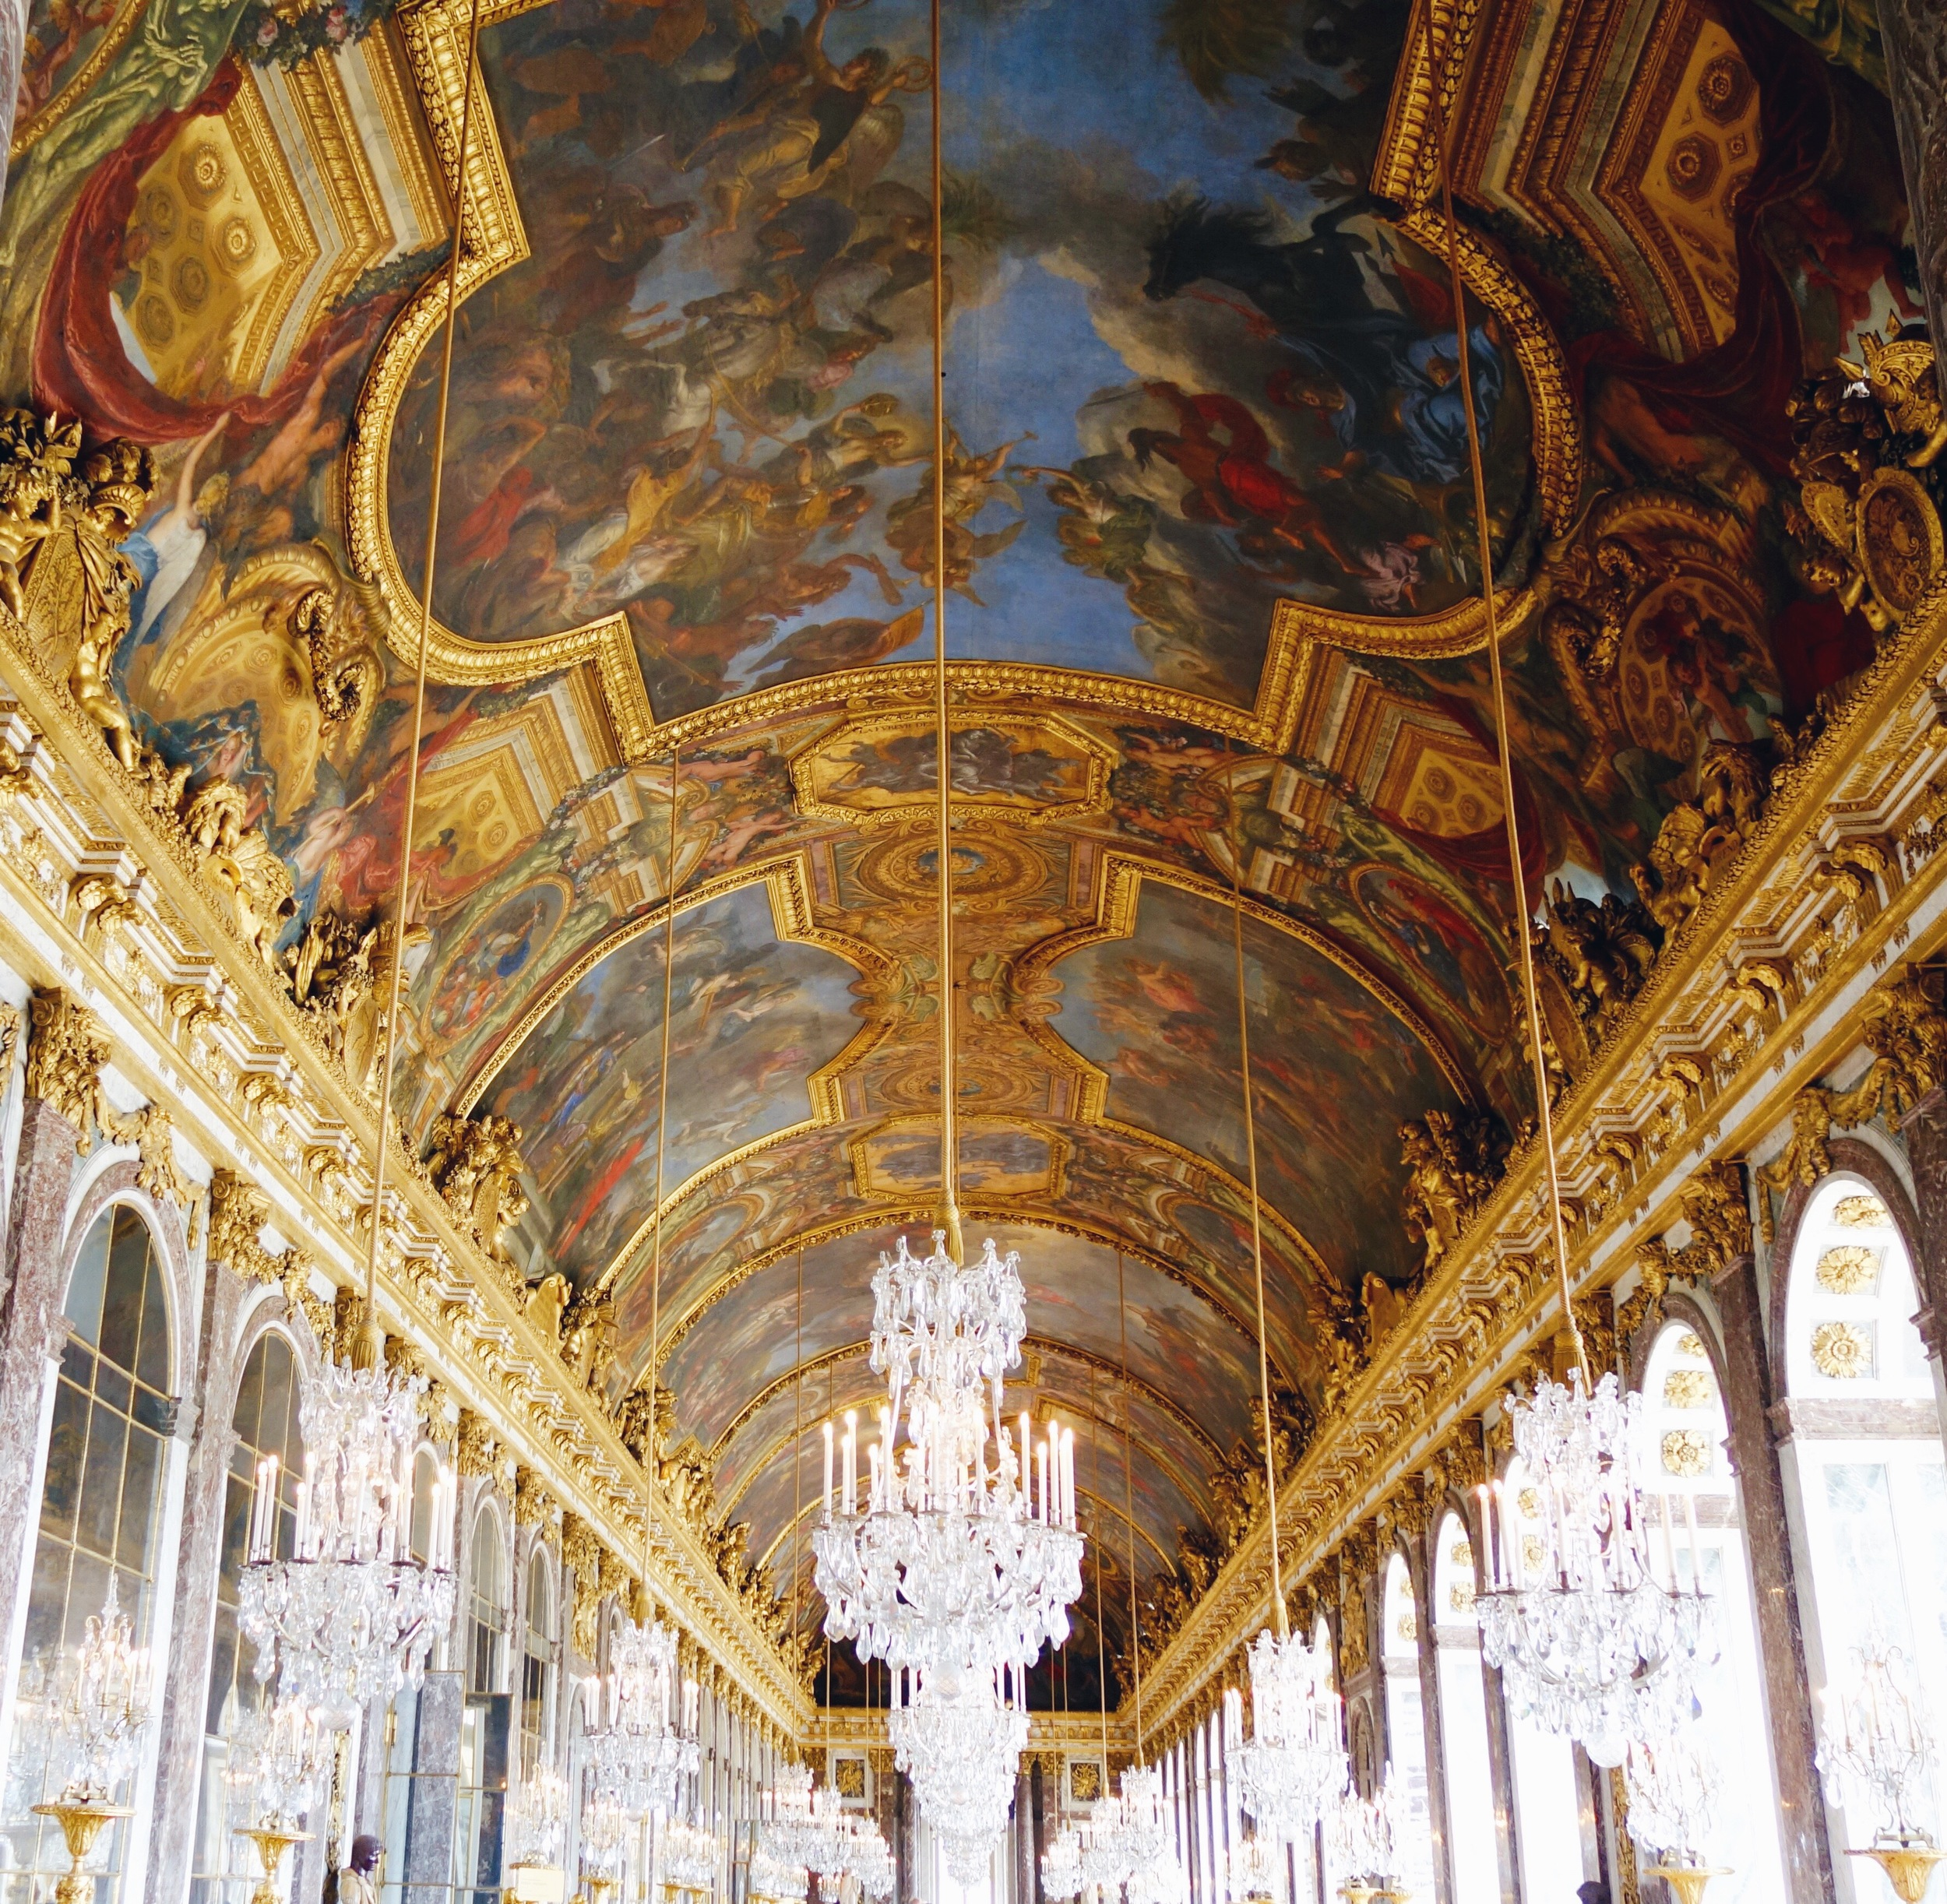 The stunning hall of mirrors.  Seriously it is dazzling in every way and photos cannot do it justice.